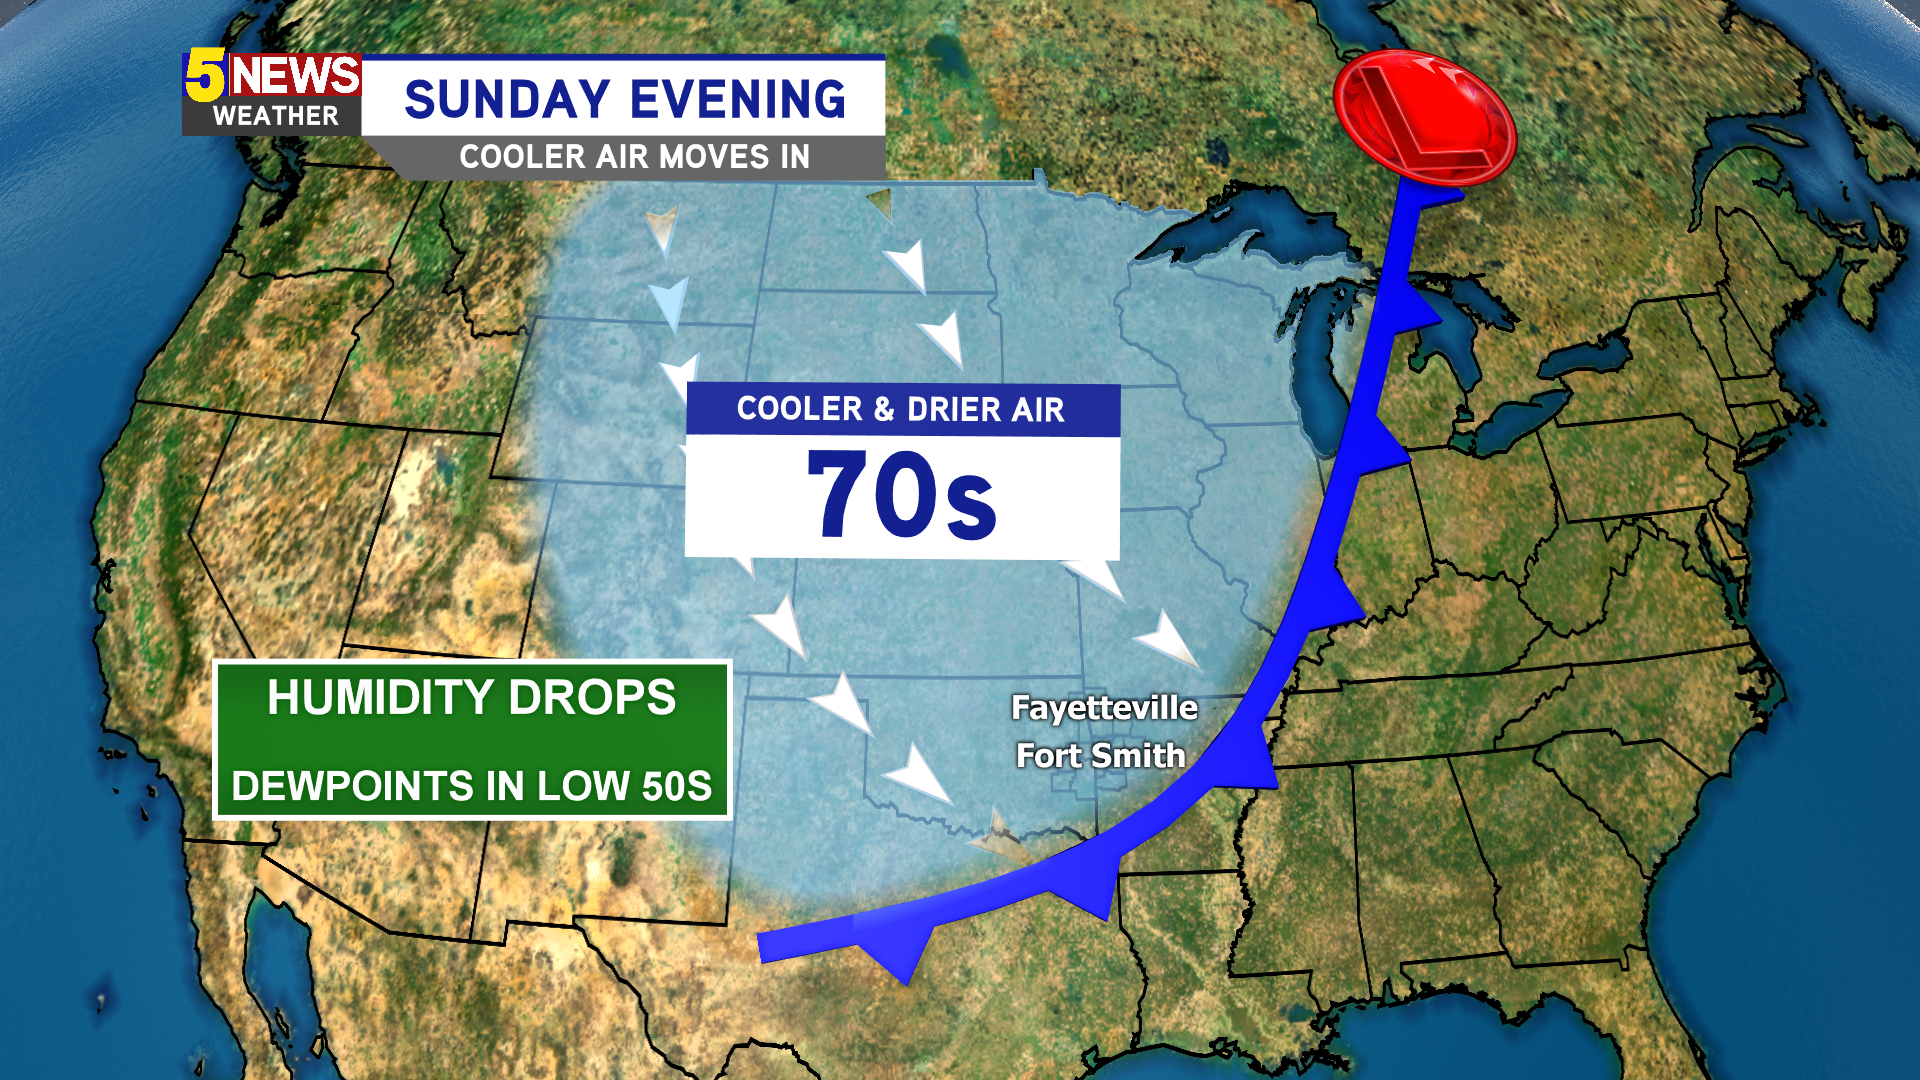 Cold Front Swings Through By Sunday Evening thumbnail